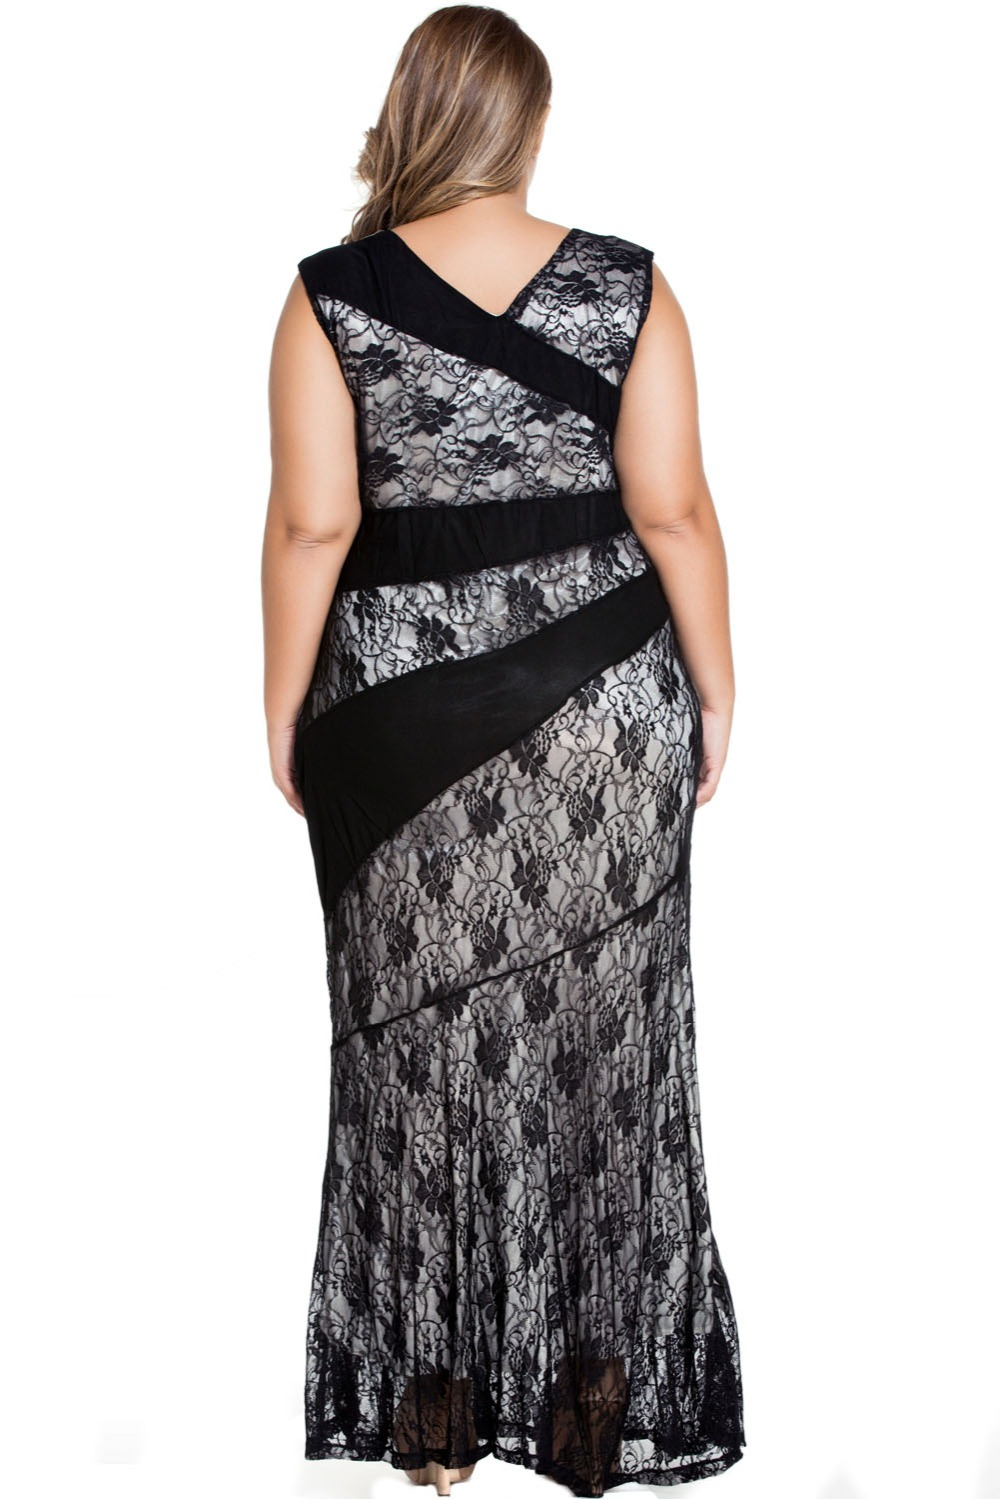 cfb73b100248 Cfanny 2016 New Black Red Blue Stylish Lace Splice Plus Size Mermaid Dress  Women Elegant Stripes Patchwork Long Party Dress-in Dresses from Women s  Clothing ...